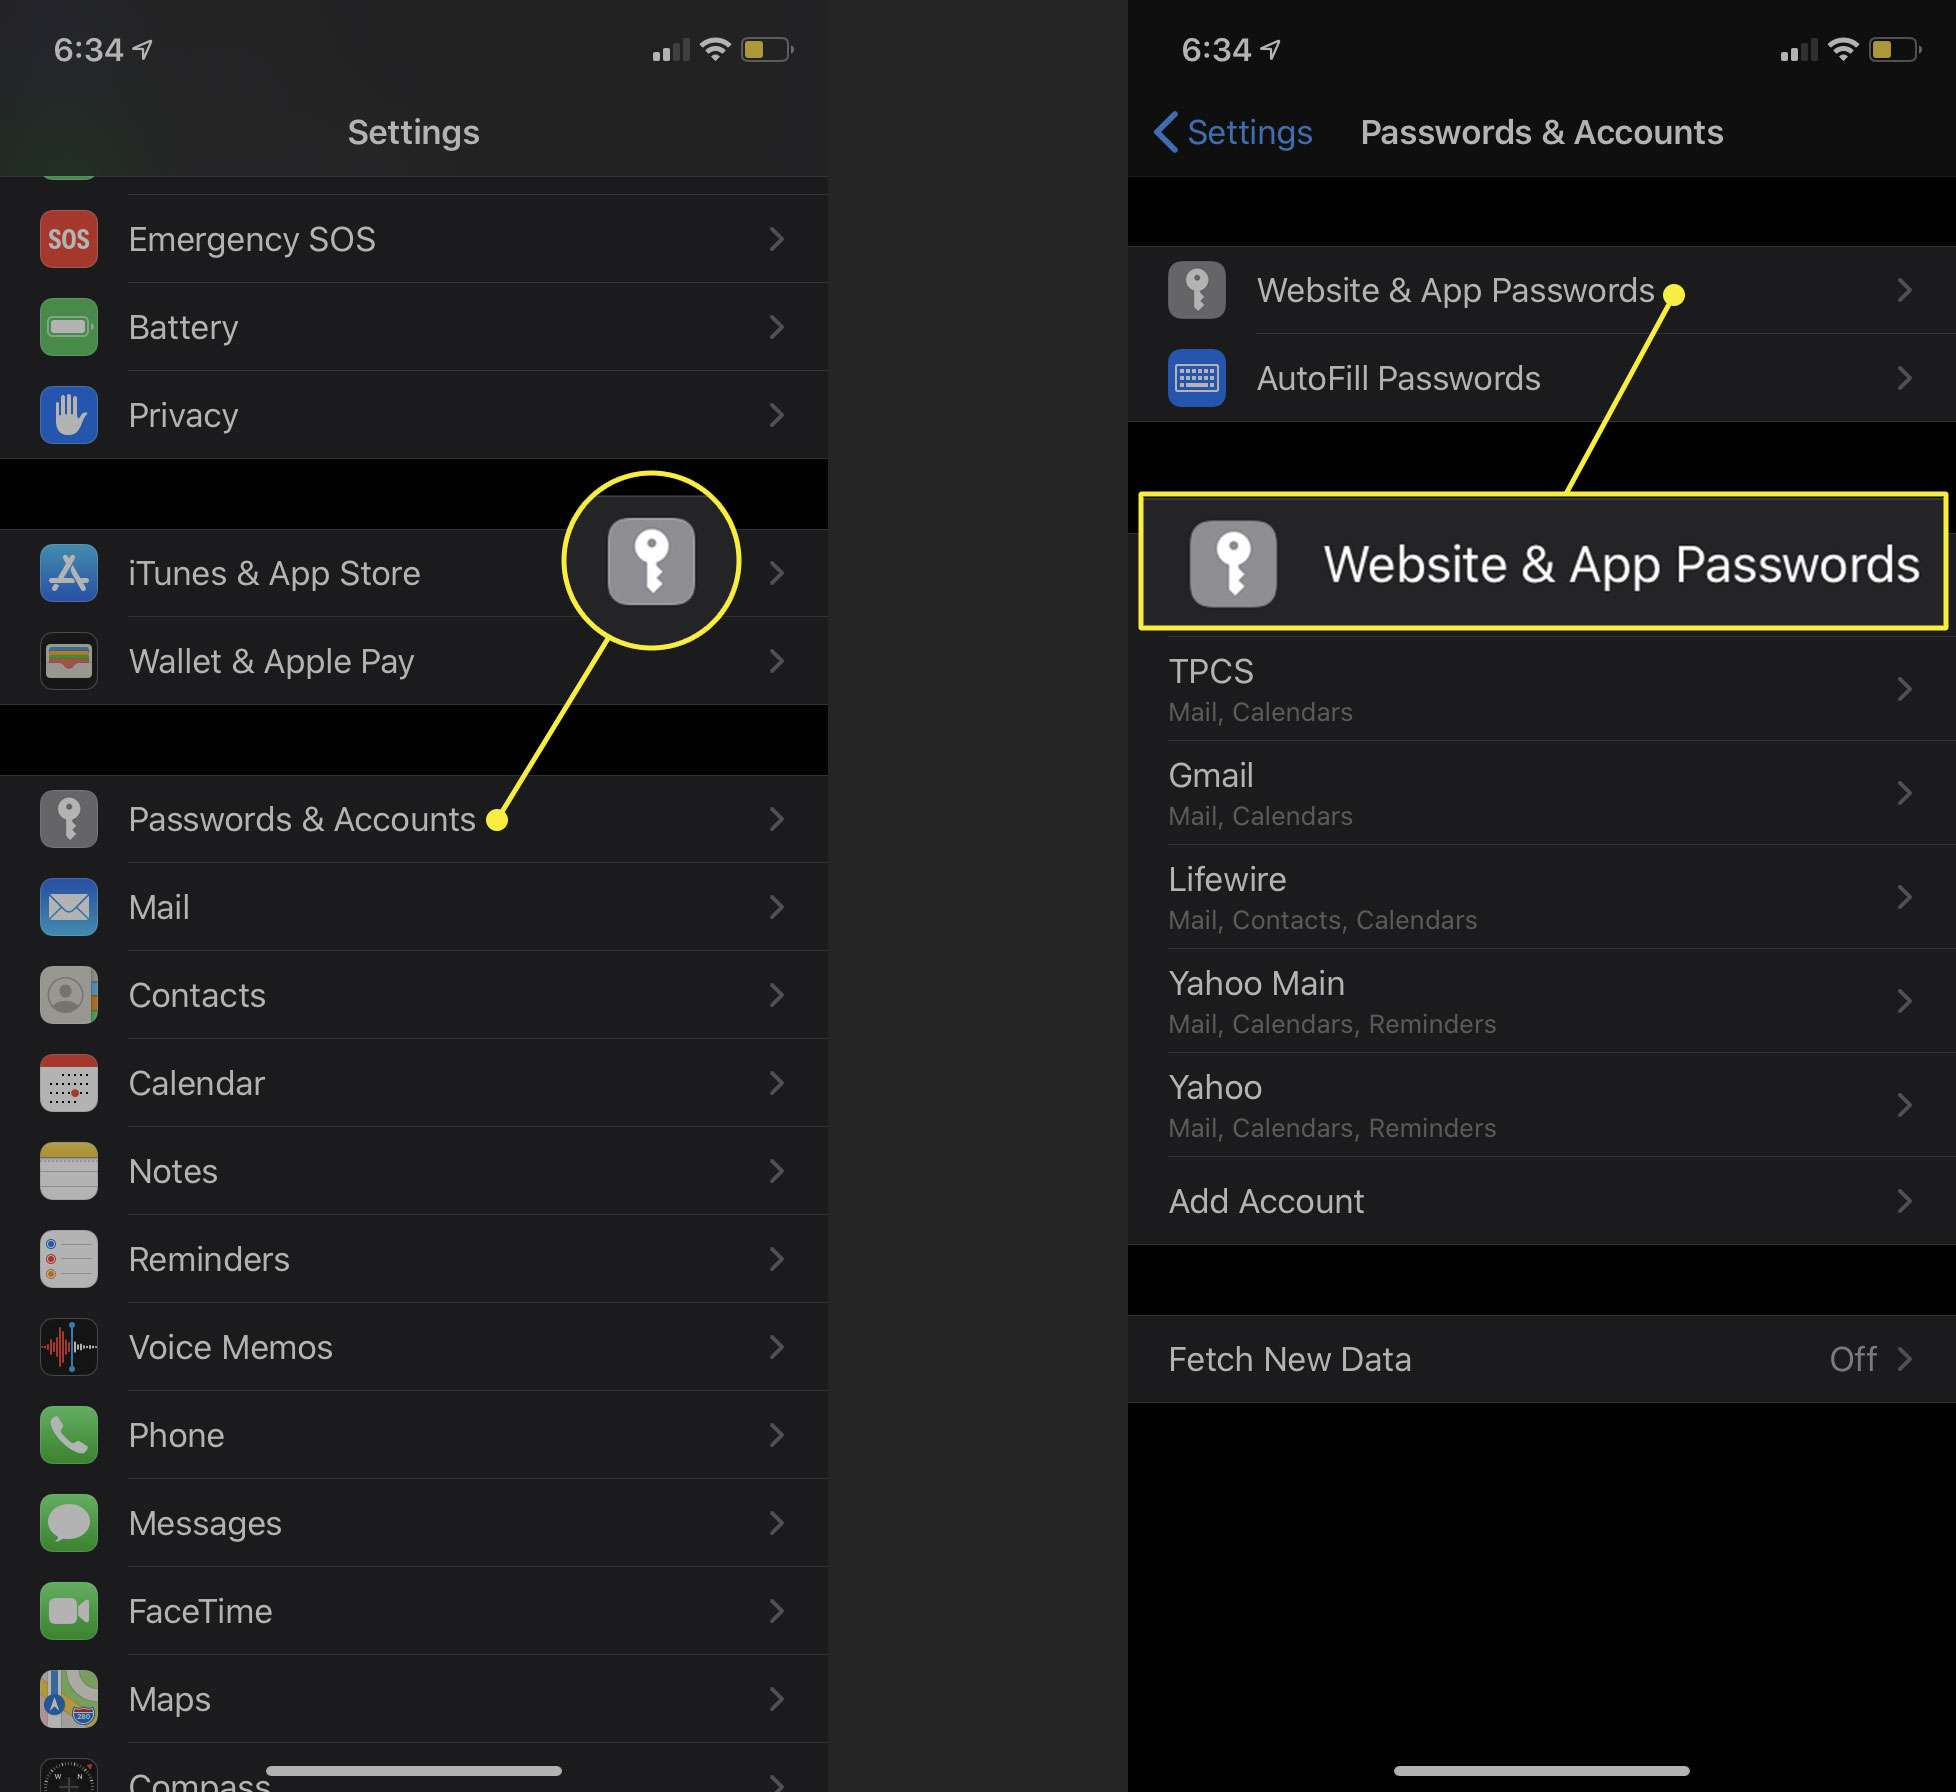 iPhone settings with the Passwords & Accounts and Website & App Passwords options highlighted